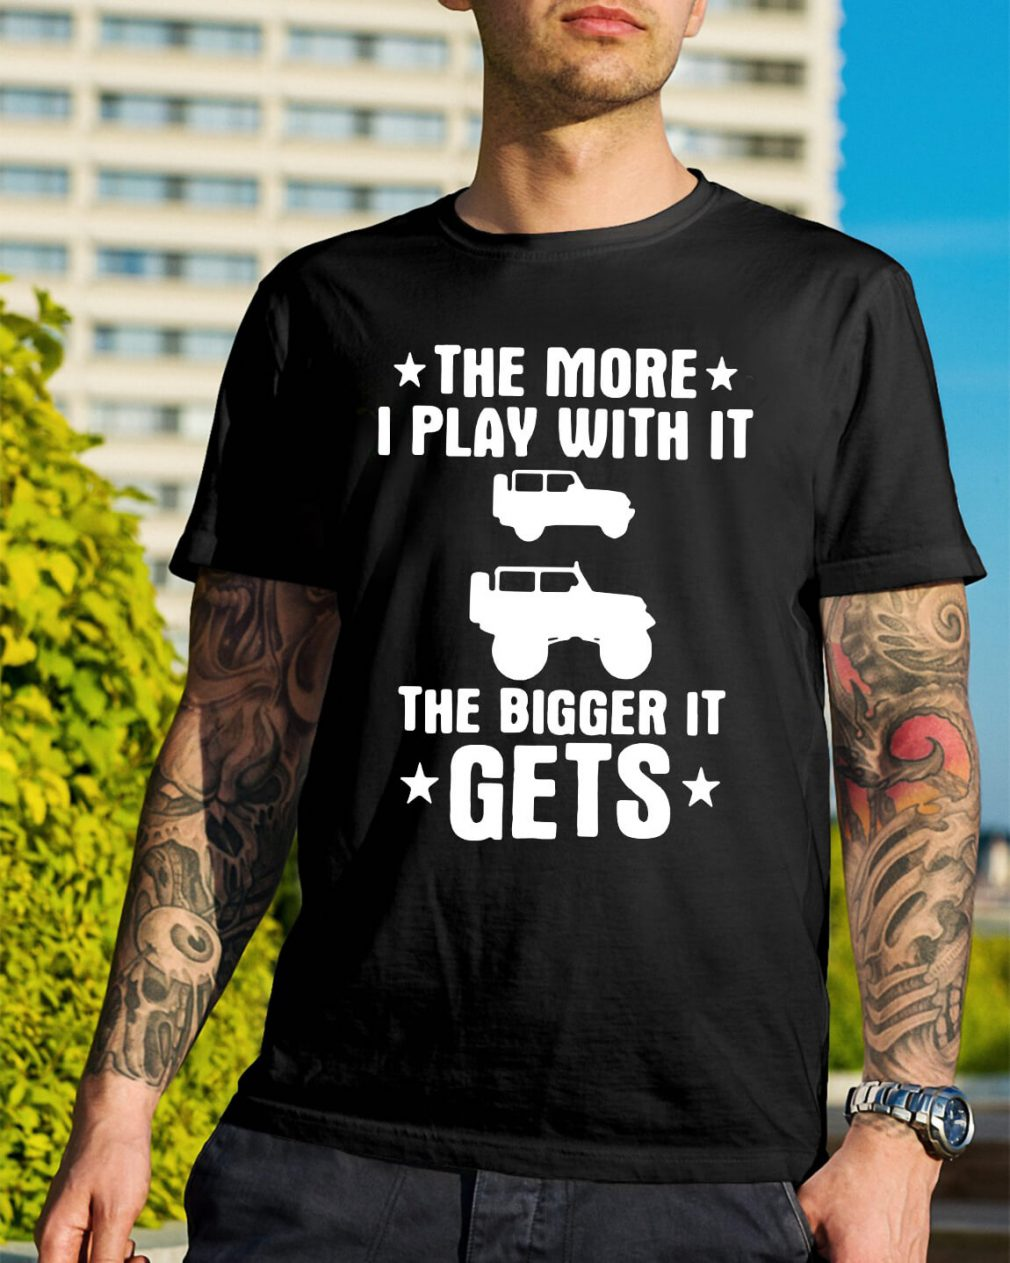 The more I play with it the bigger it gets shirt